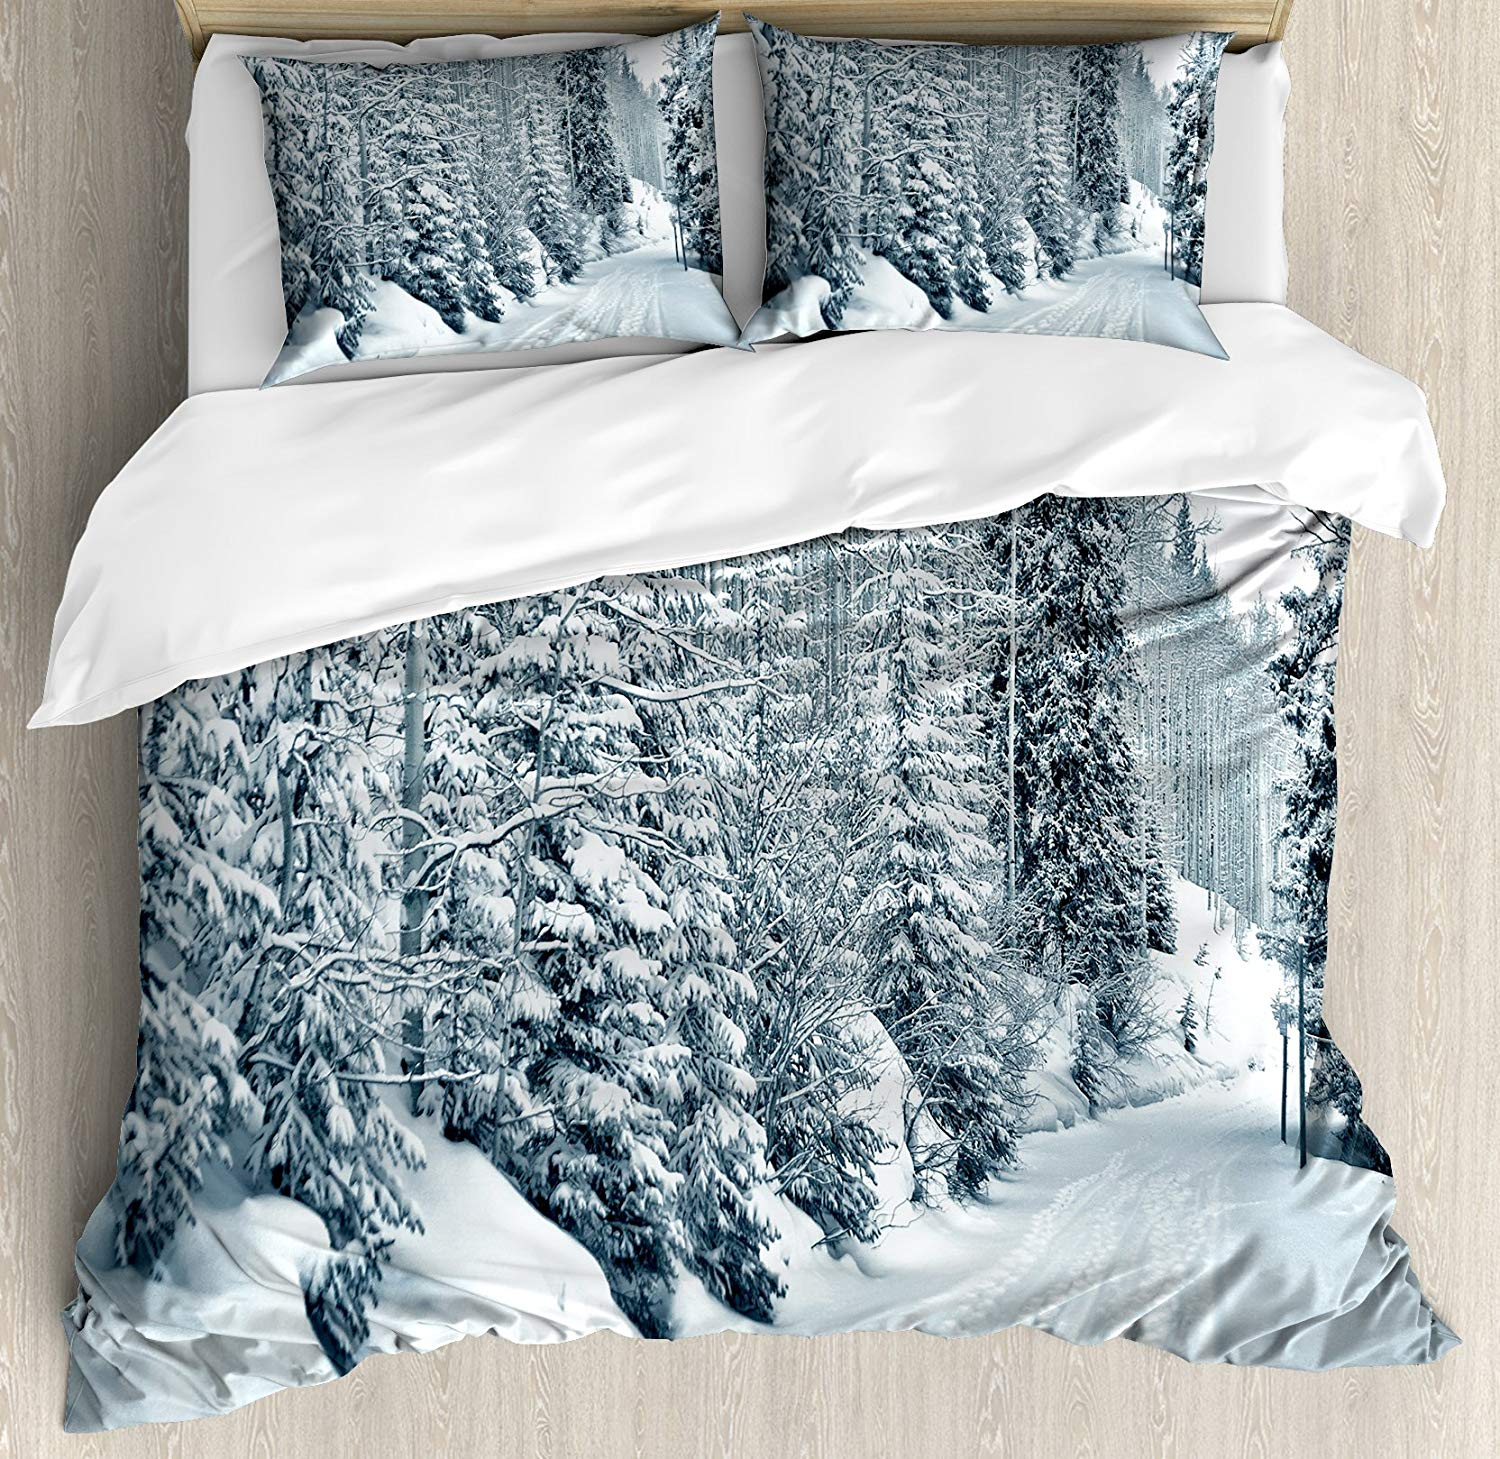 Winter Duvet Cover Set Queen Size Ski Themed Snowy Road Cold Parts of The World Footprints Colorado United States Bedding SetWinter Duvet Cover Set Queen Size Ski Themed Snowy Road Cold Parts of The World Footprints Colorado United States Bedding Set